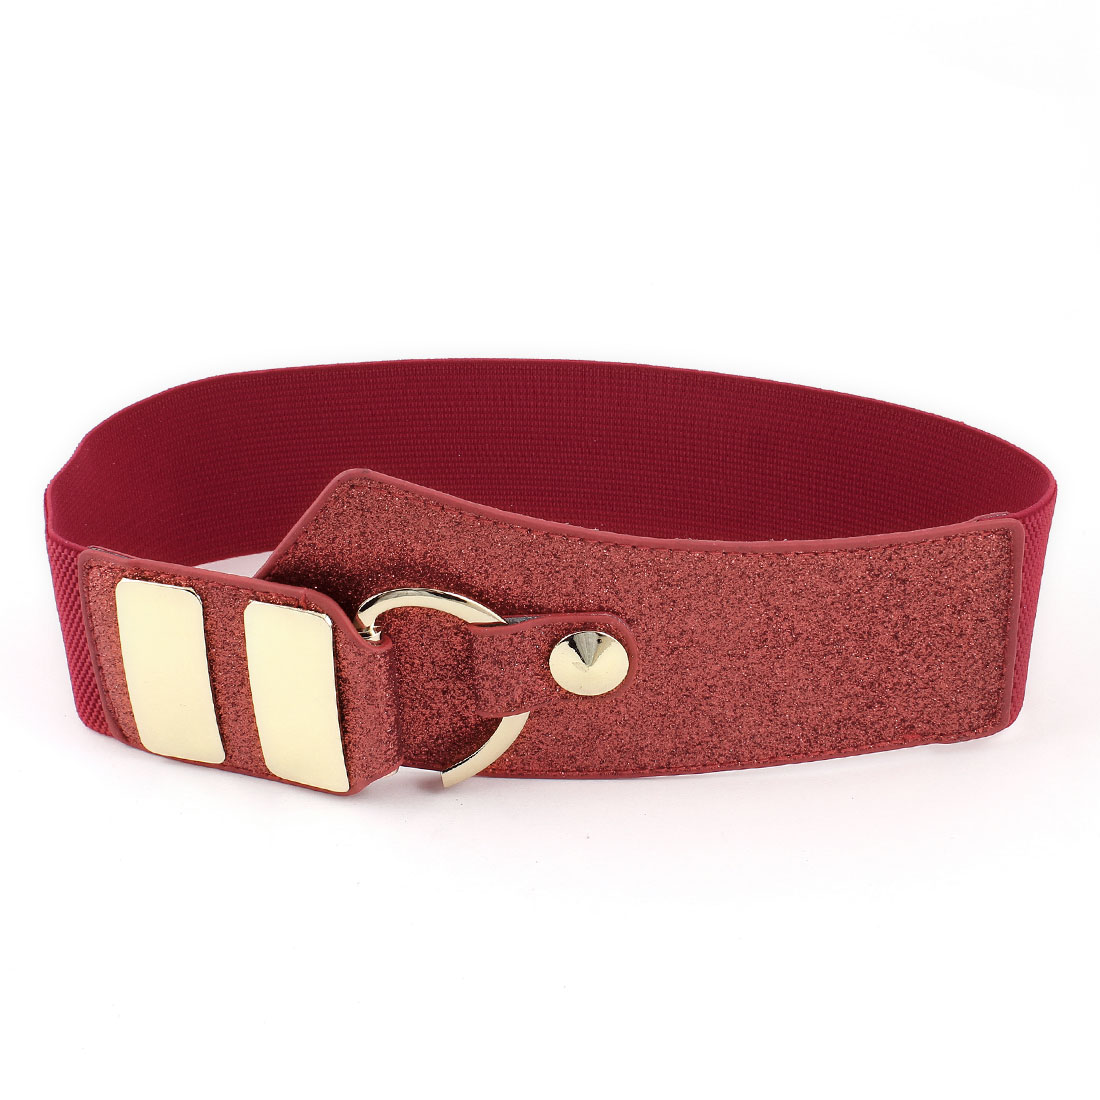 Glitter Powder Detail Faux Leather Elastic Belt Red for Lady Woman